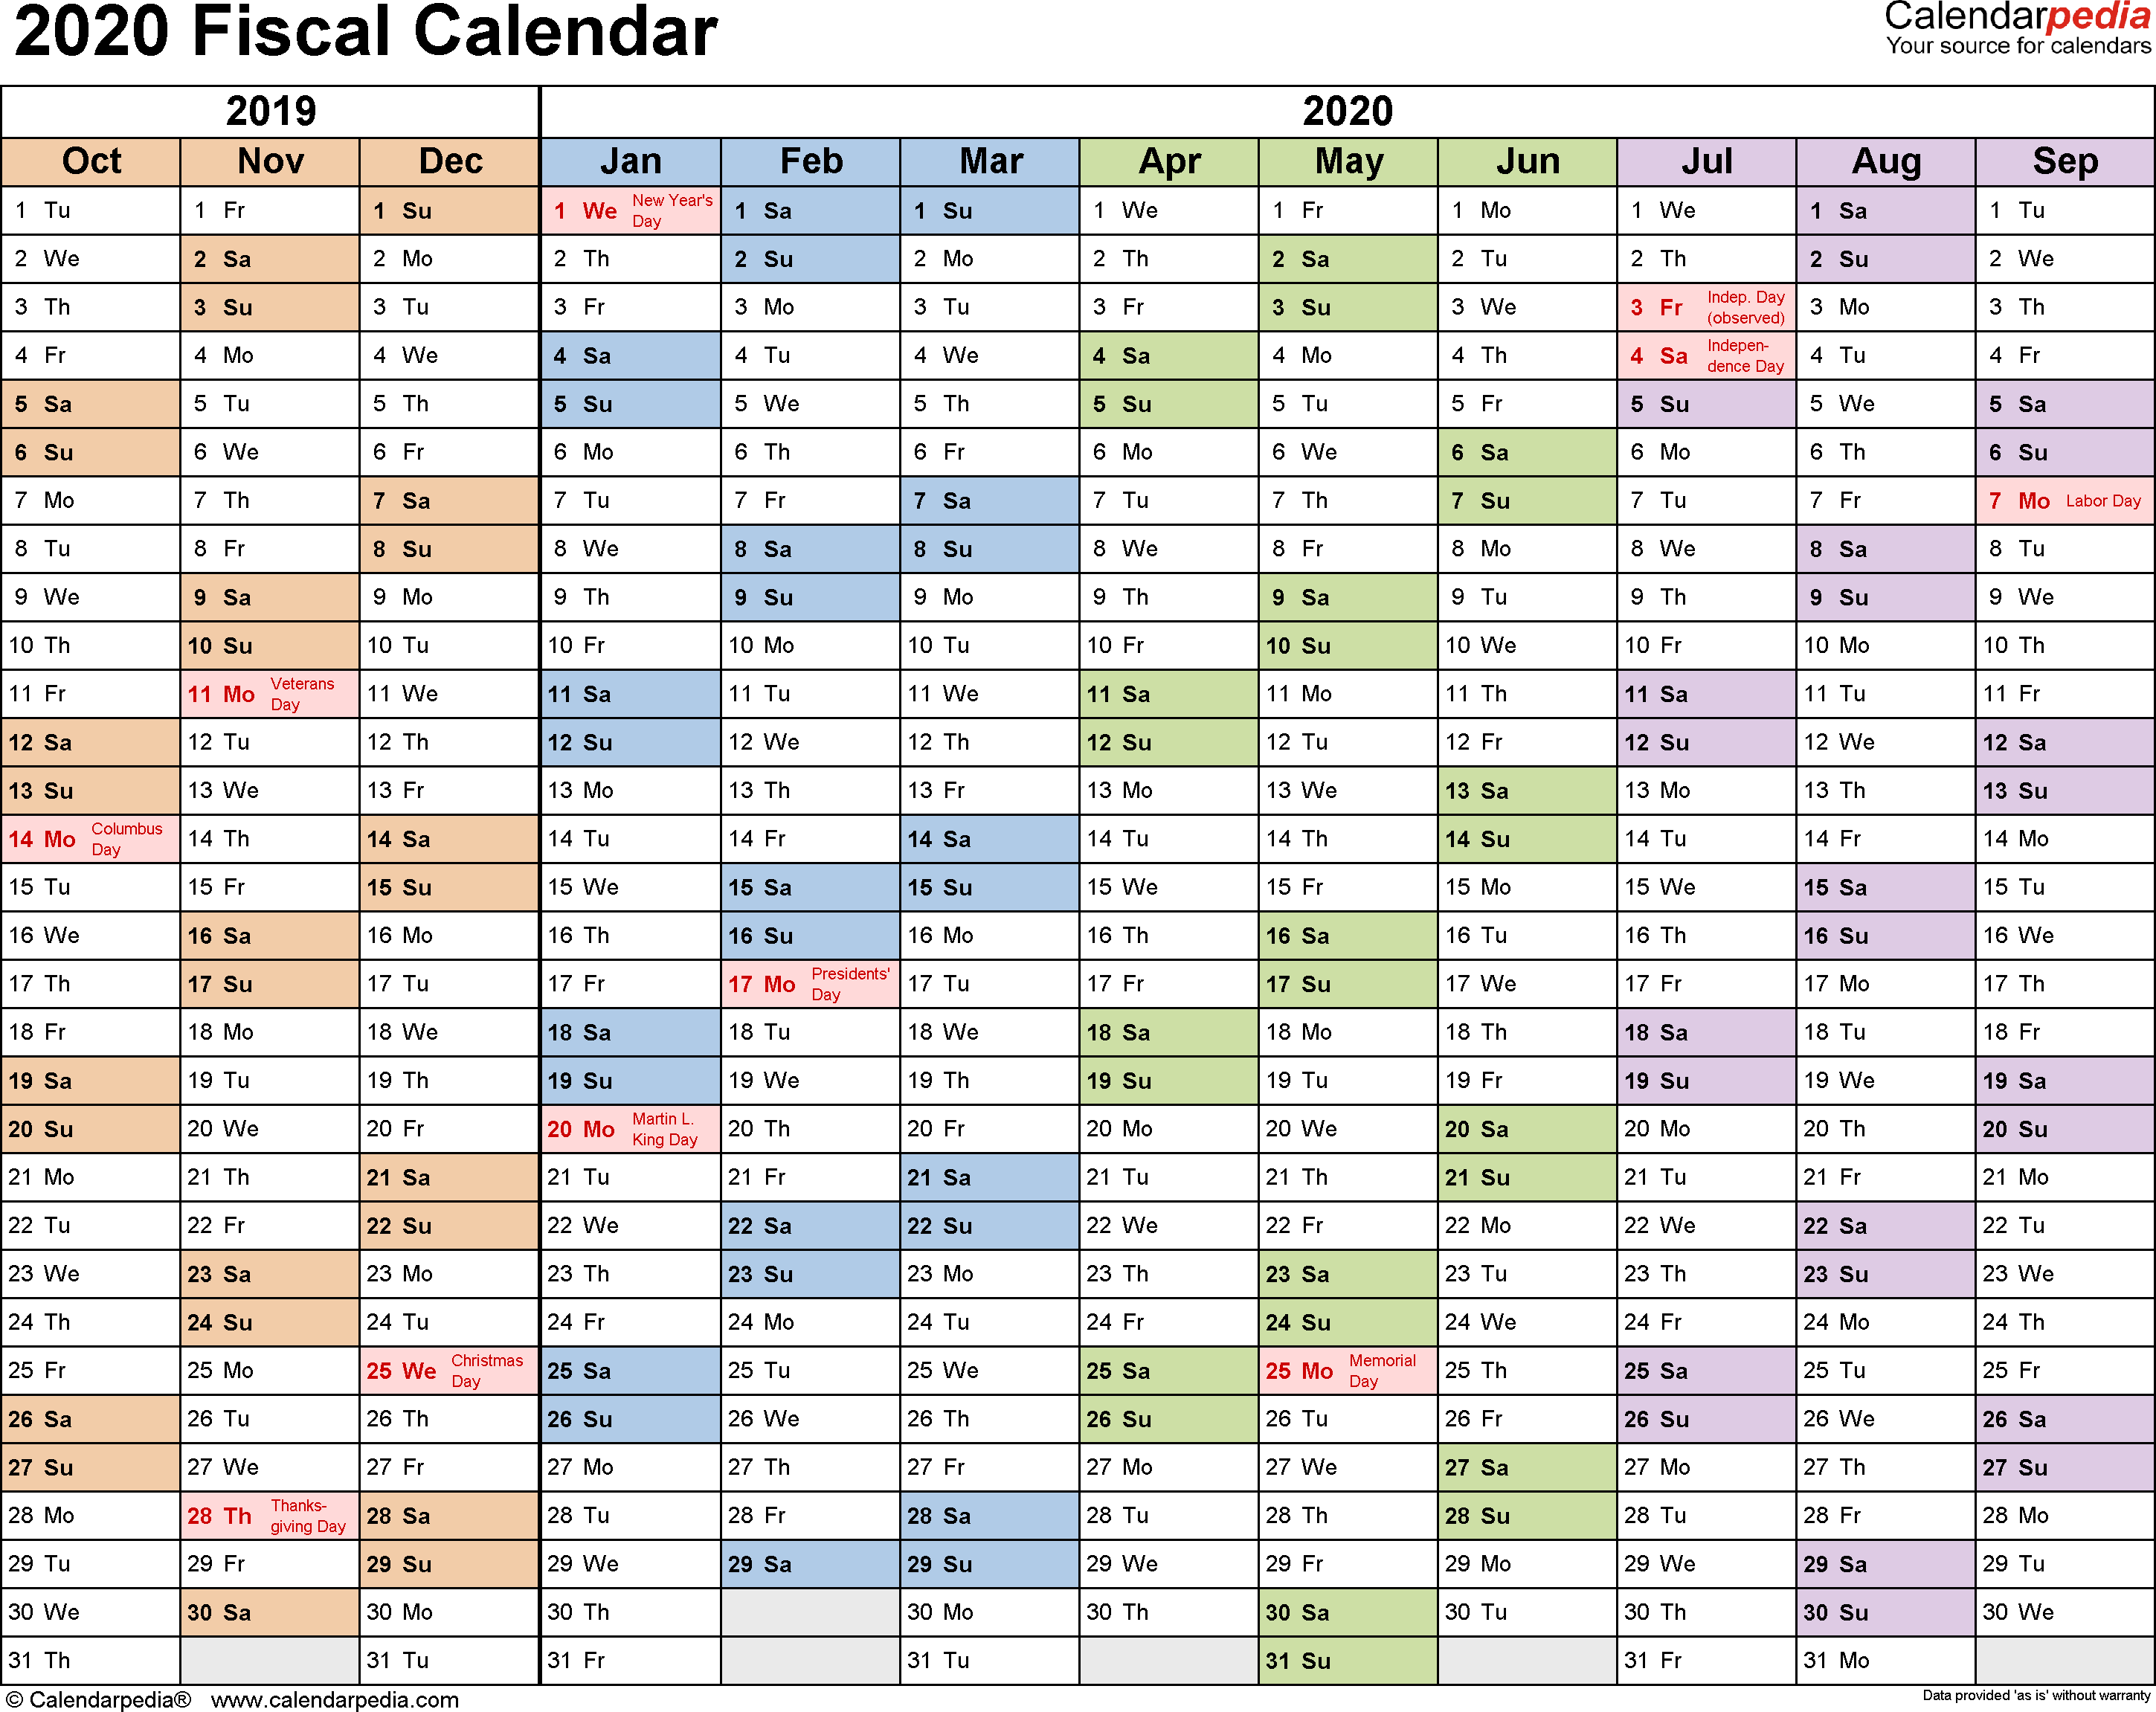 Fiscal Calendars 2020 - Free Printable Excel Templates inside 2020 Biweekly Payroll Calendar Excel Template